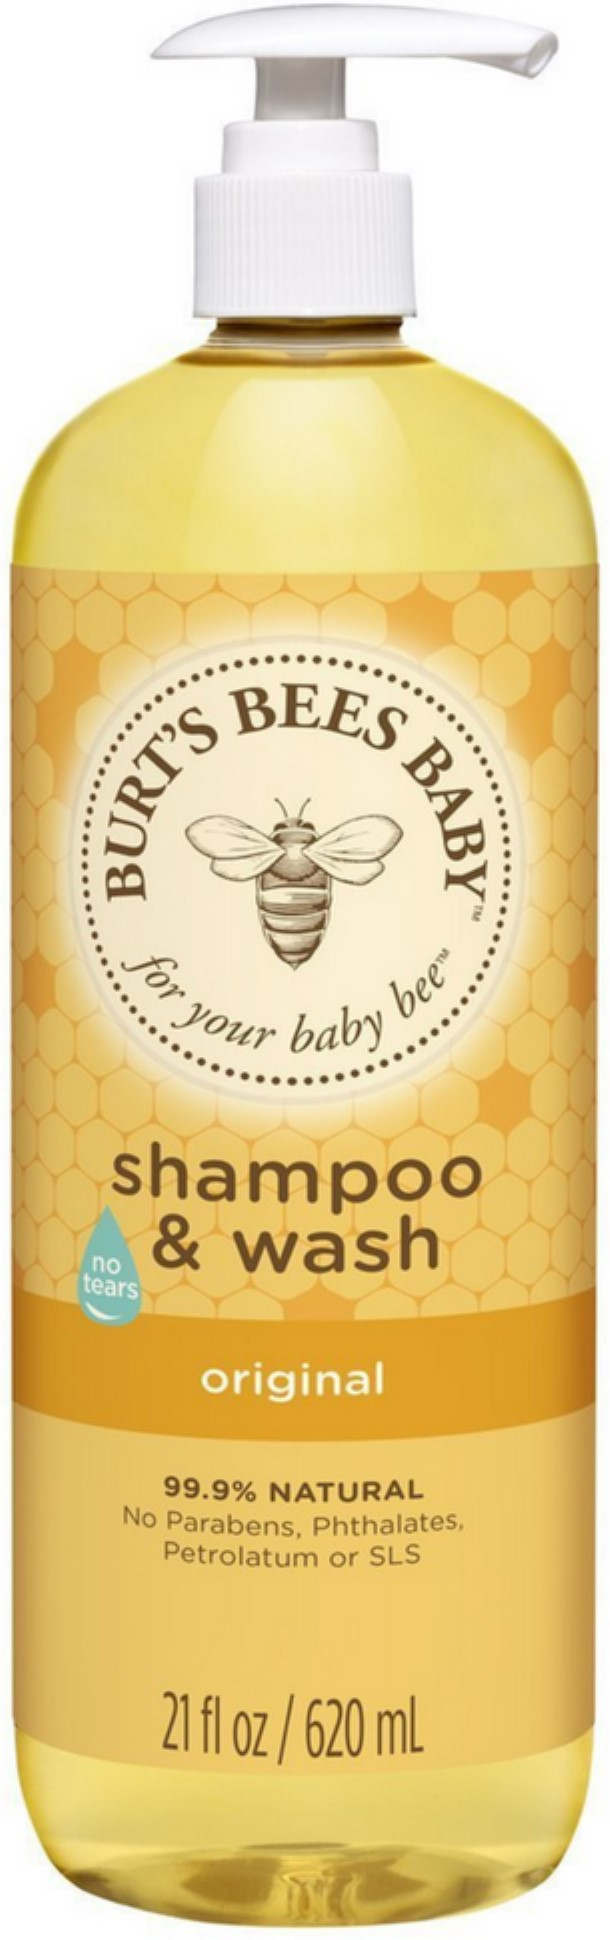 4 Pack Burt's Bees Baby Shampoo & Wash, Original 21 oz by